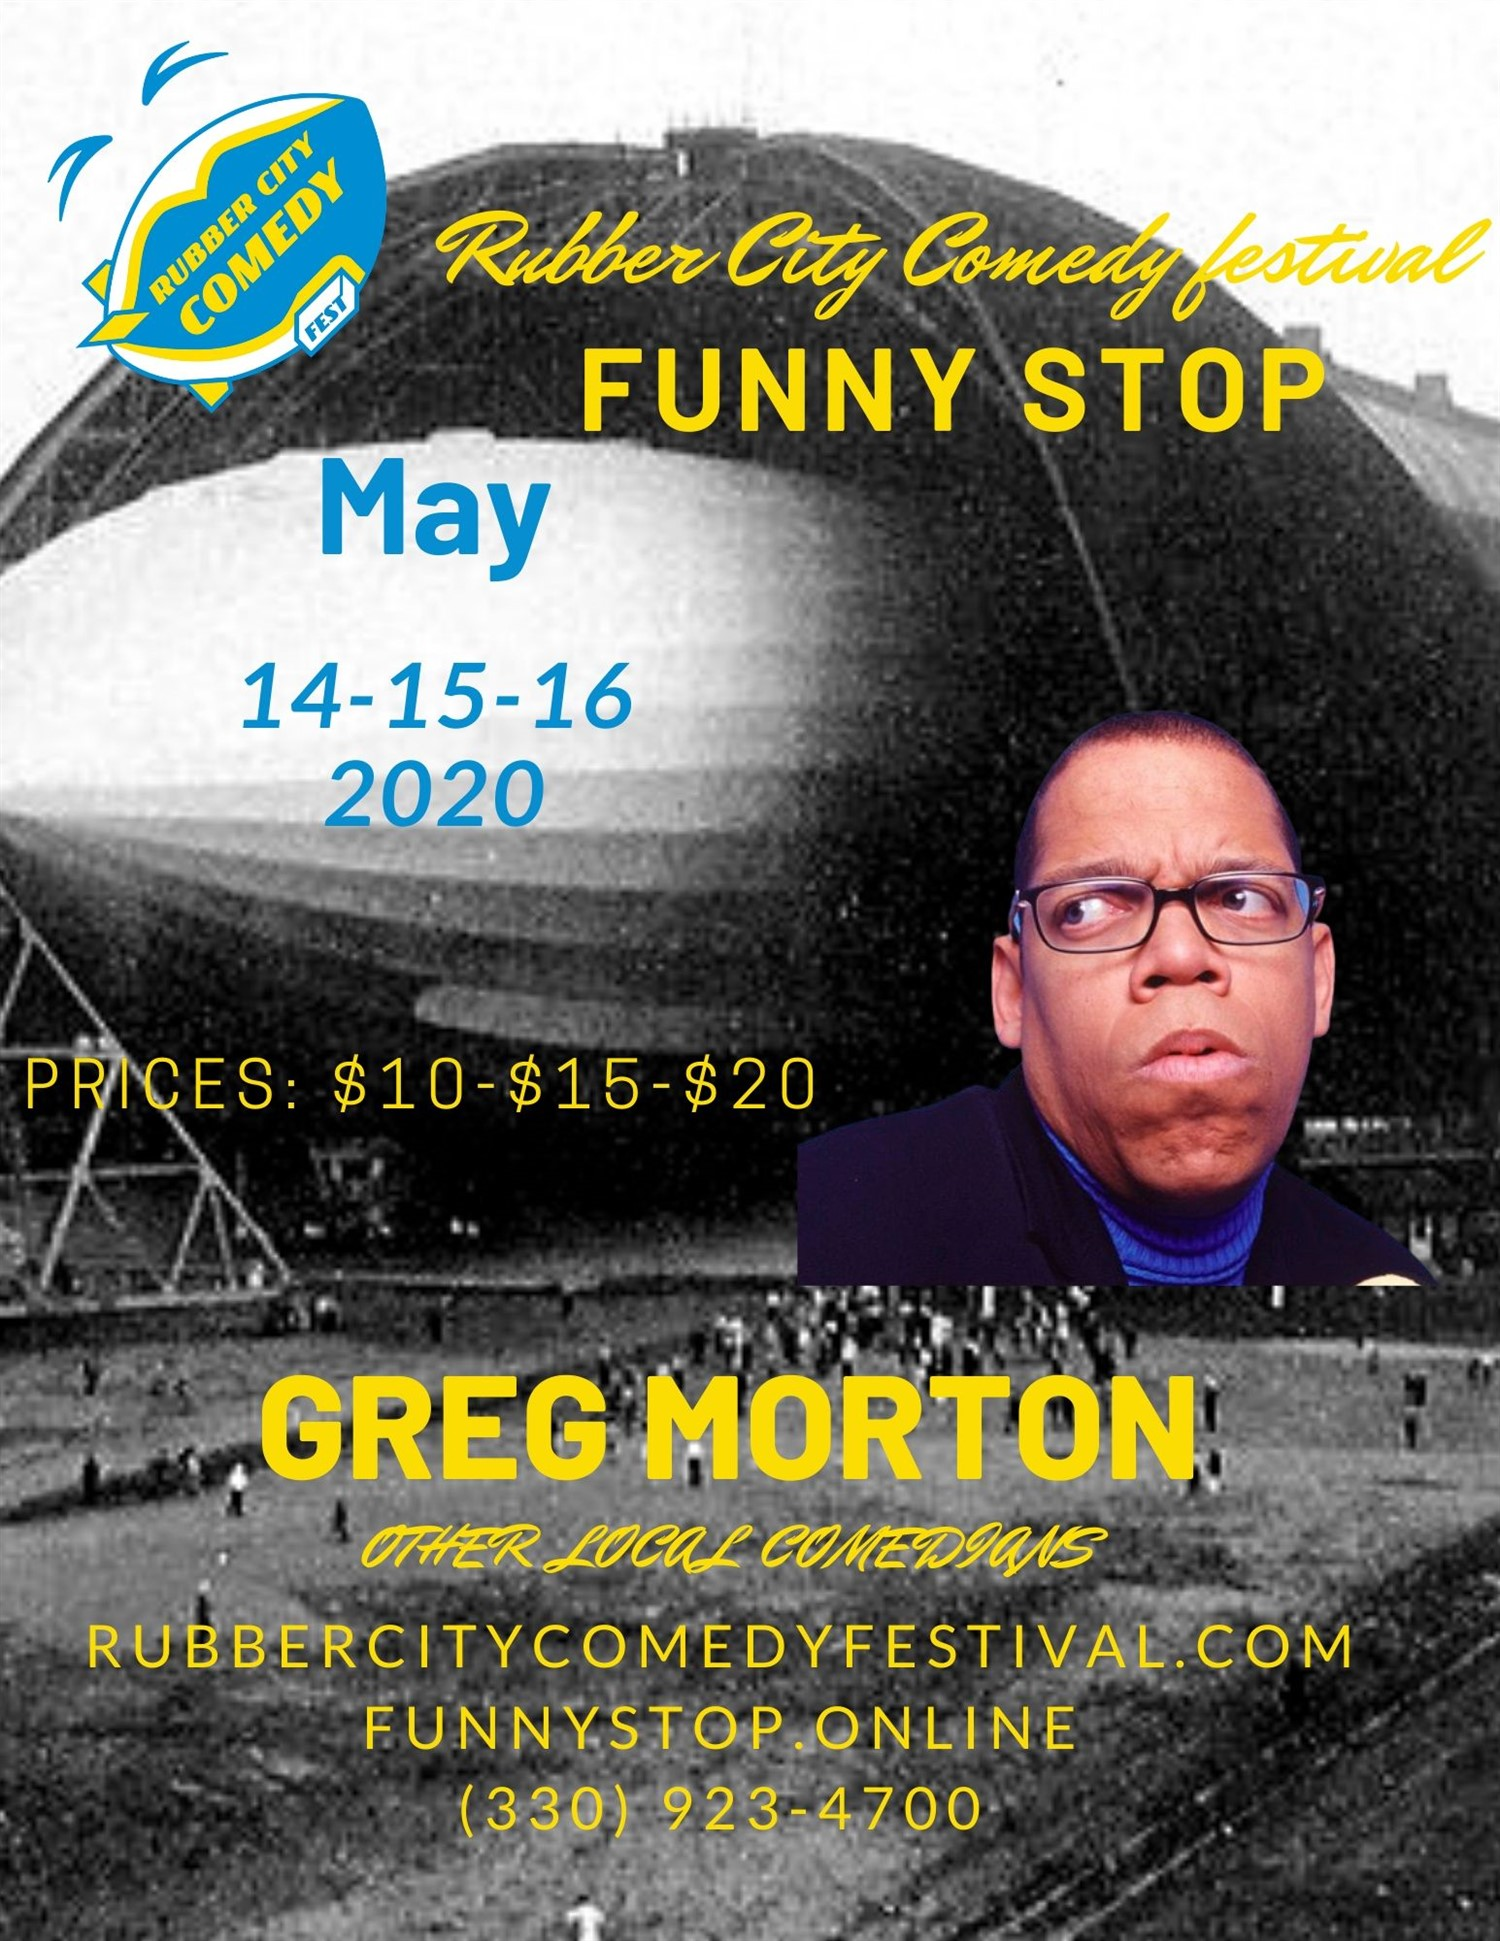 Rubber City Comedy Festival Greg Morton Thursday Show on may. 14, 20:00@Funny Stop Comedy Club - Buy tickets and Get information on Funny Stop funnystop.online